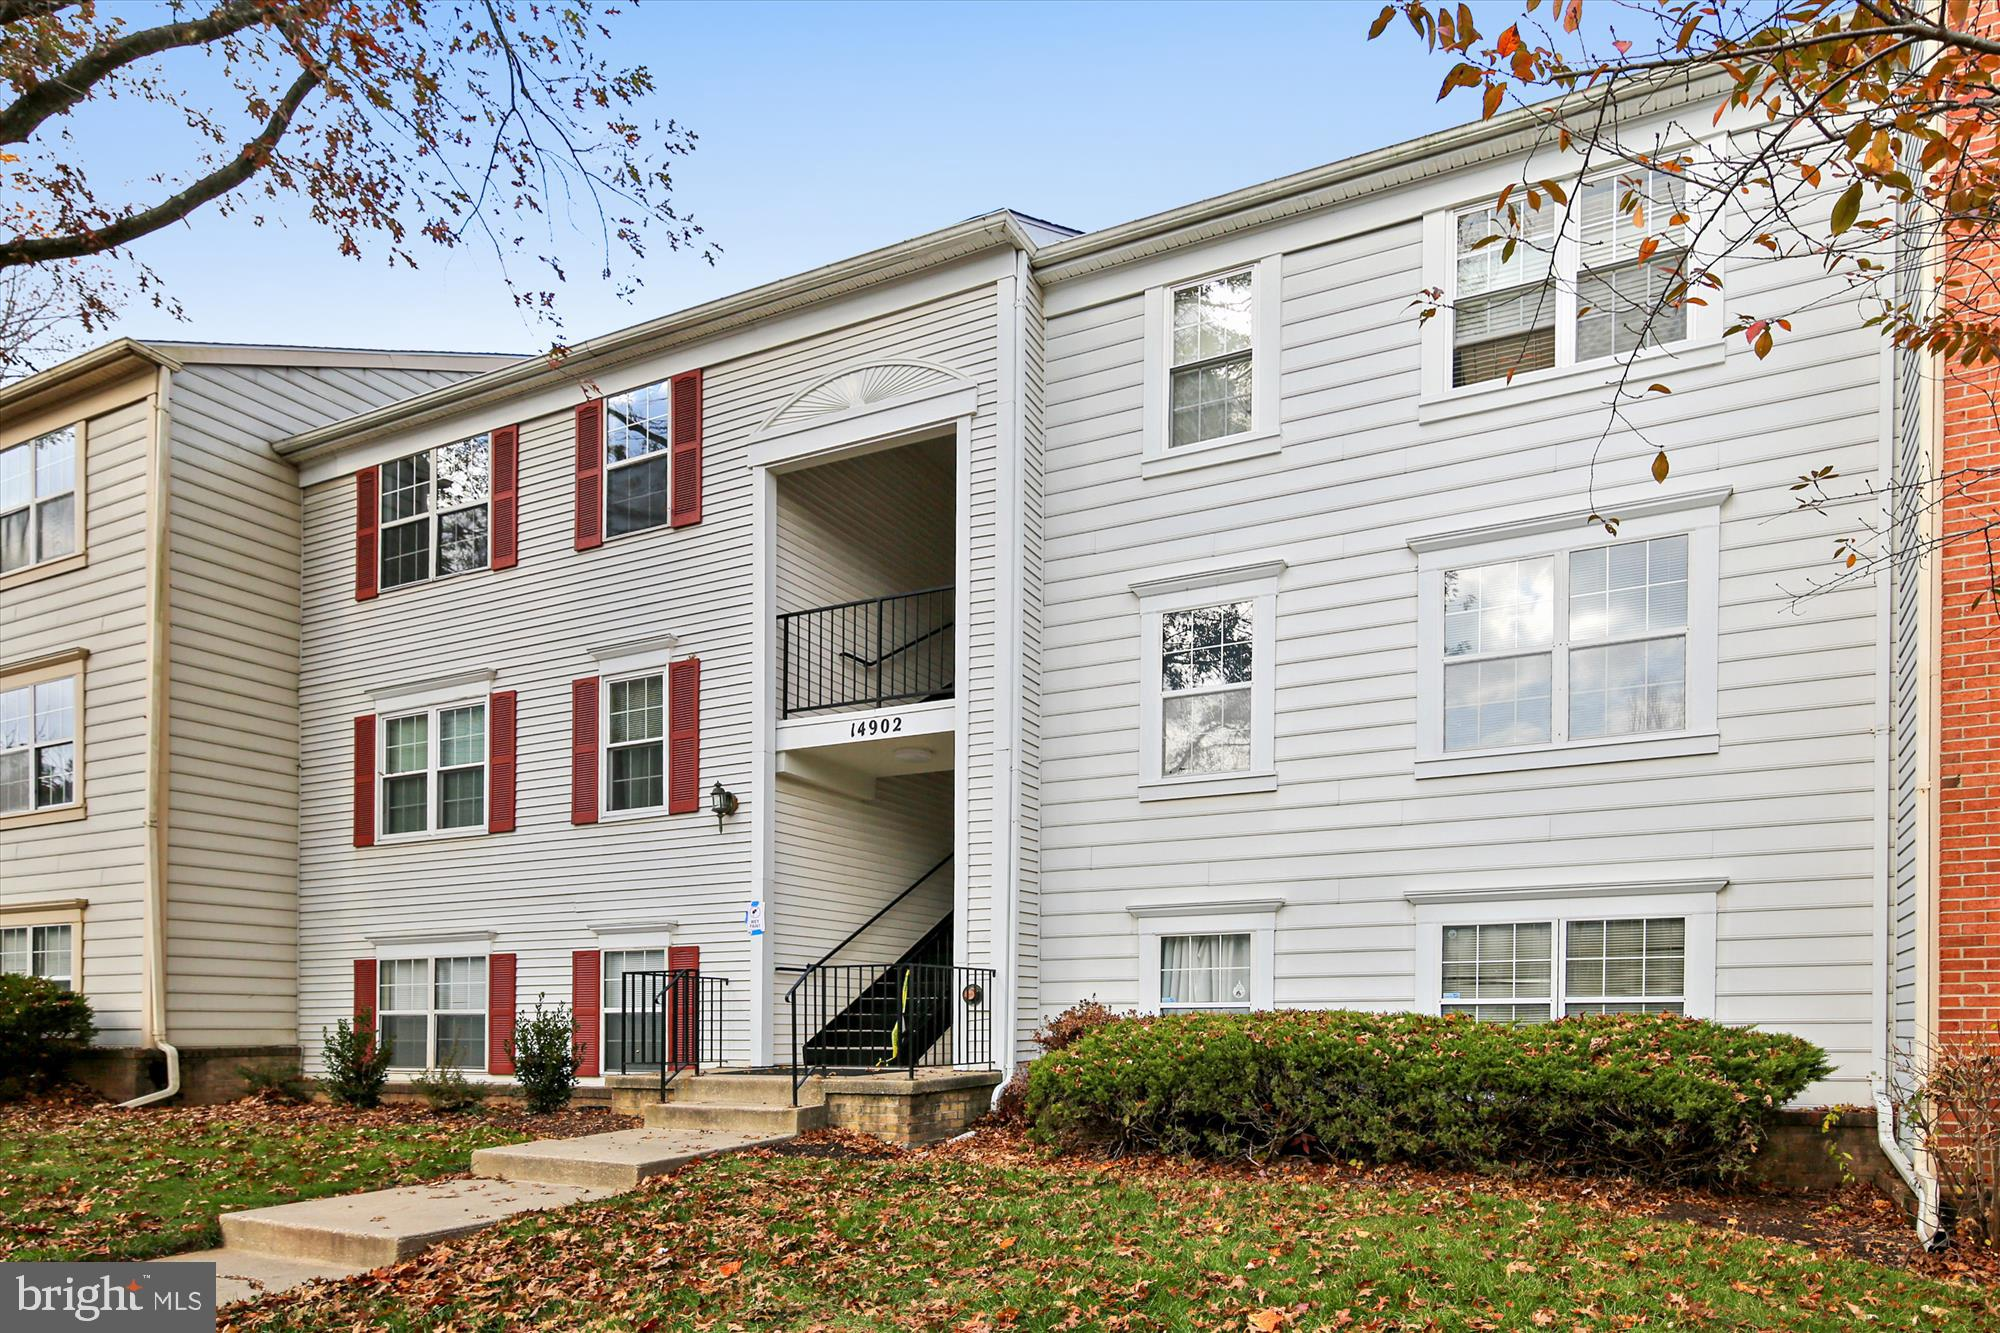 Here is your chance to be in the highly desirable, recently renovated, top floor unit in Longmead Crossing. Bring your bags and move right in- home shows like a model! Ample natural light and so much storage throughout. Get ready to warm up by the wood burning fireplace on those cold winter nights. Bonus Washer/Dryer in the unit. Fabulous neighborhood with walking paths, pools, and parks, including Olney Manor recreational, swim and skate park. Incredibly commuter friendly with easy access to the ICC, Georgia Ave, Layhill Rd, Norbeck Rd, and an easy ride to the Glenmont Metro.